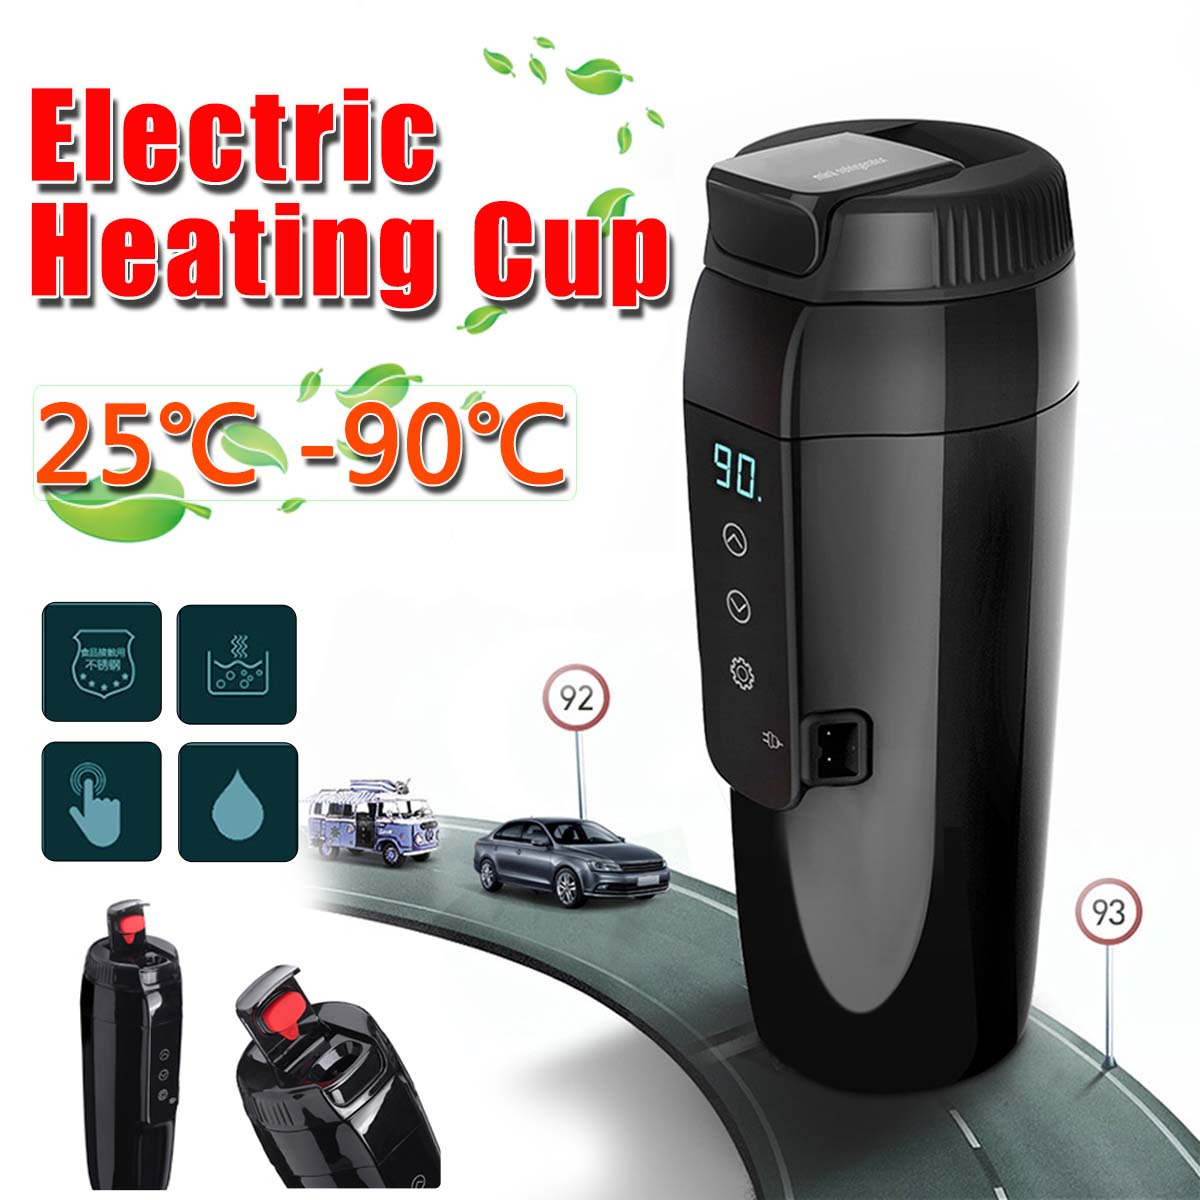 12V 350ml Vehicle Electric Heating Cup Portable Travel Heating Water Kettle Boiler Coffee Tea Milk Heated Mug Soaked Noodles